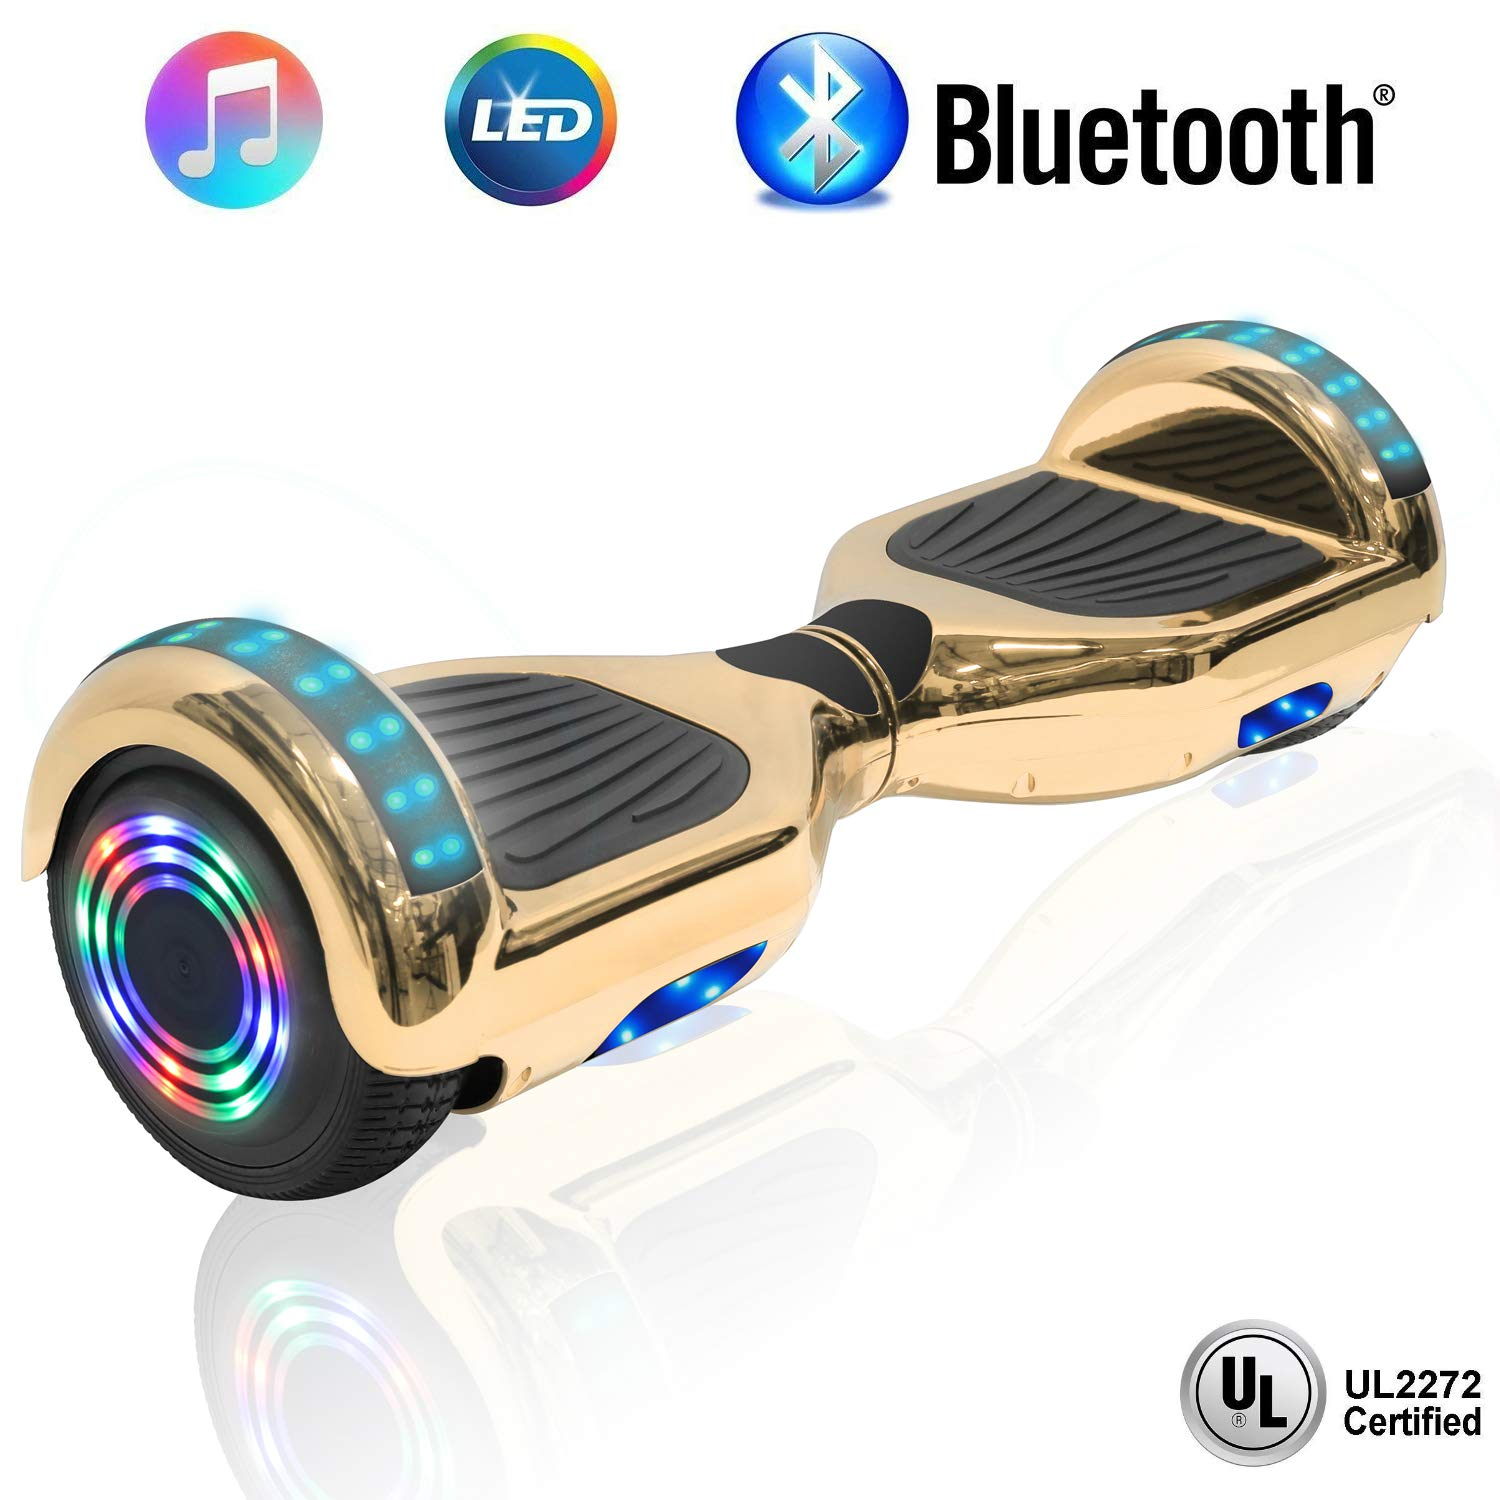 NHT 6.5'' Hoverboard Electric Self Balancing Scooter Sidelights - UL2272 Certified Black, Blue, Pink, Red, White (Chrome Gold)